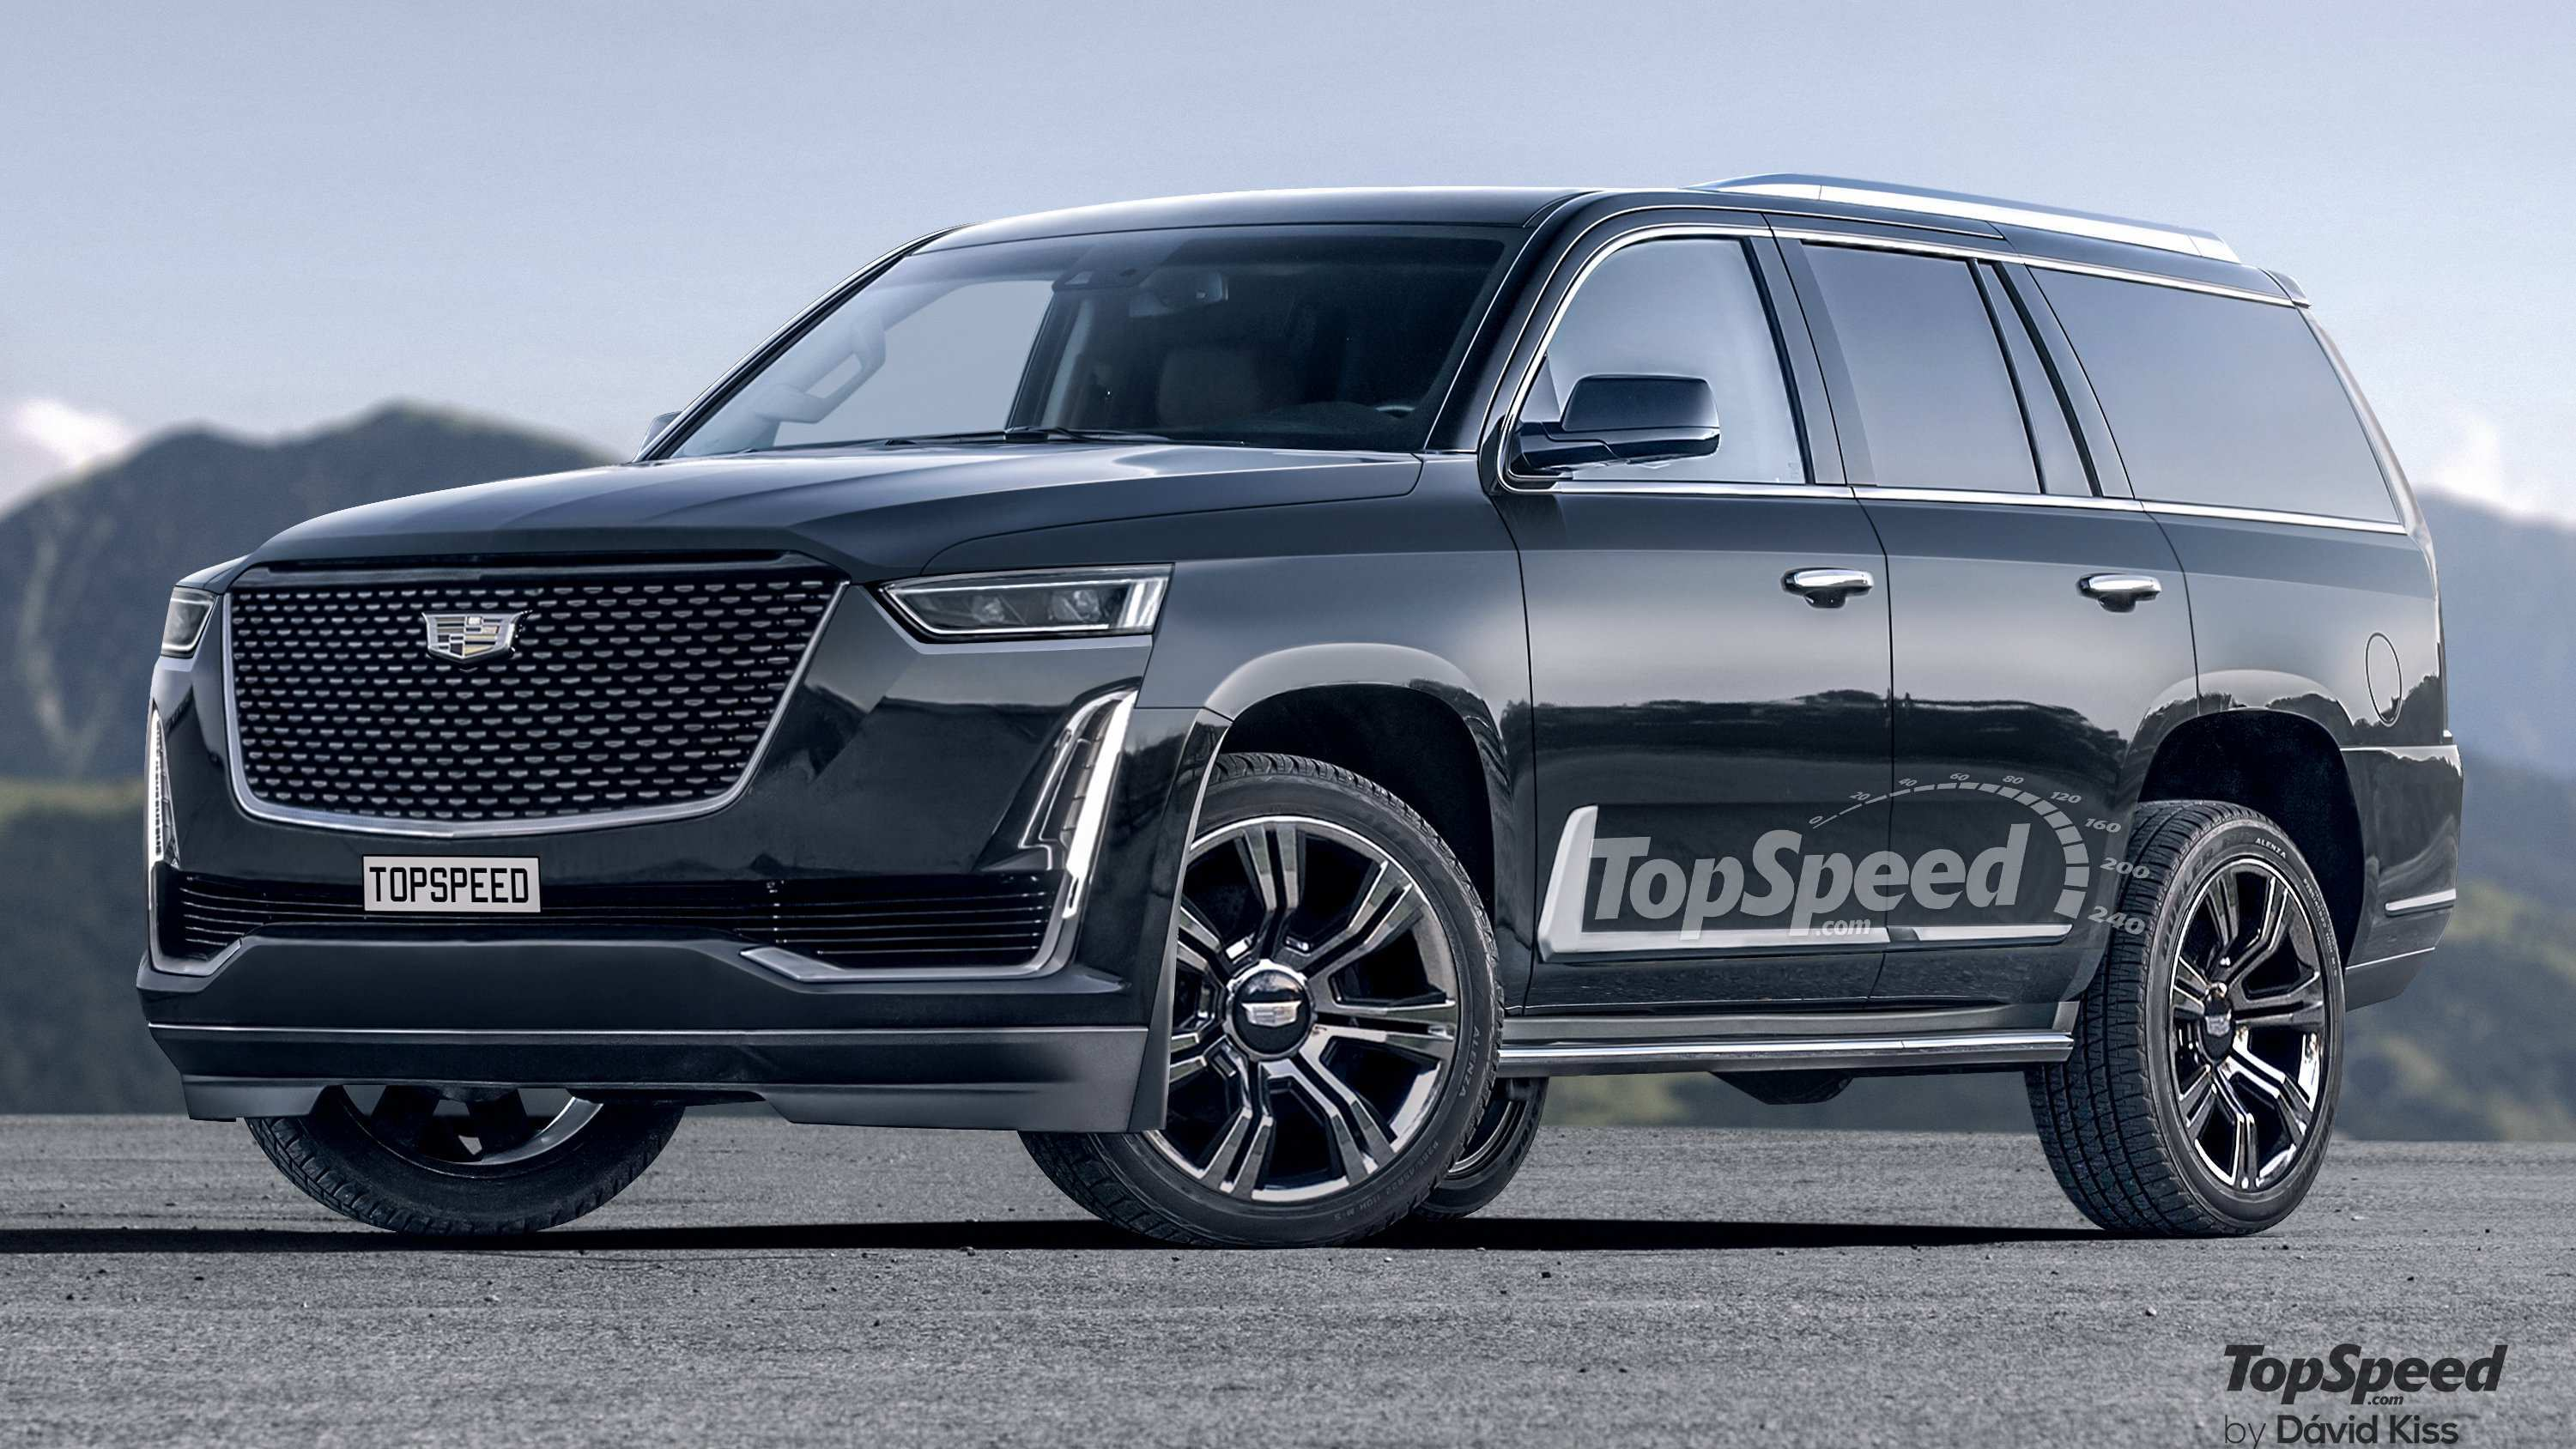 34 Best Review 2020 Cadillac Escalade Body Style Change Ratings with 2020 Cadillac Escalade Body Style Change